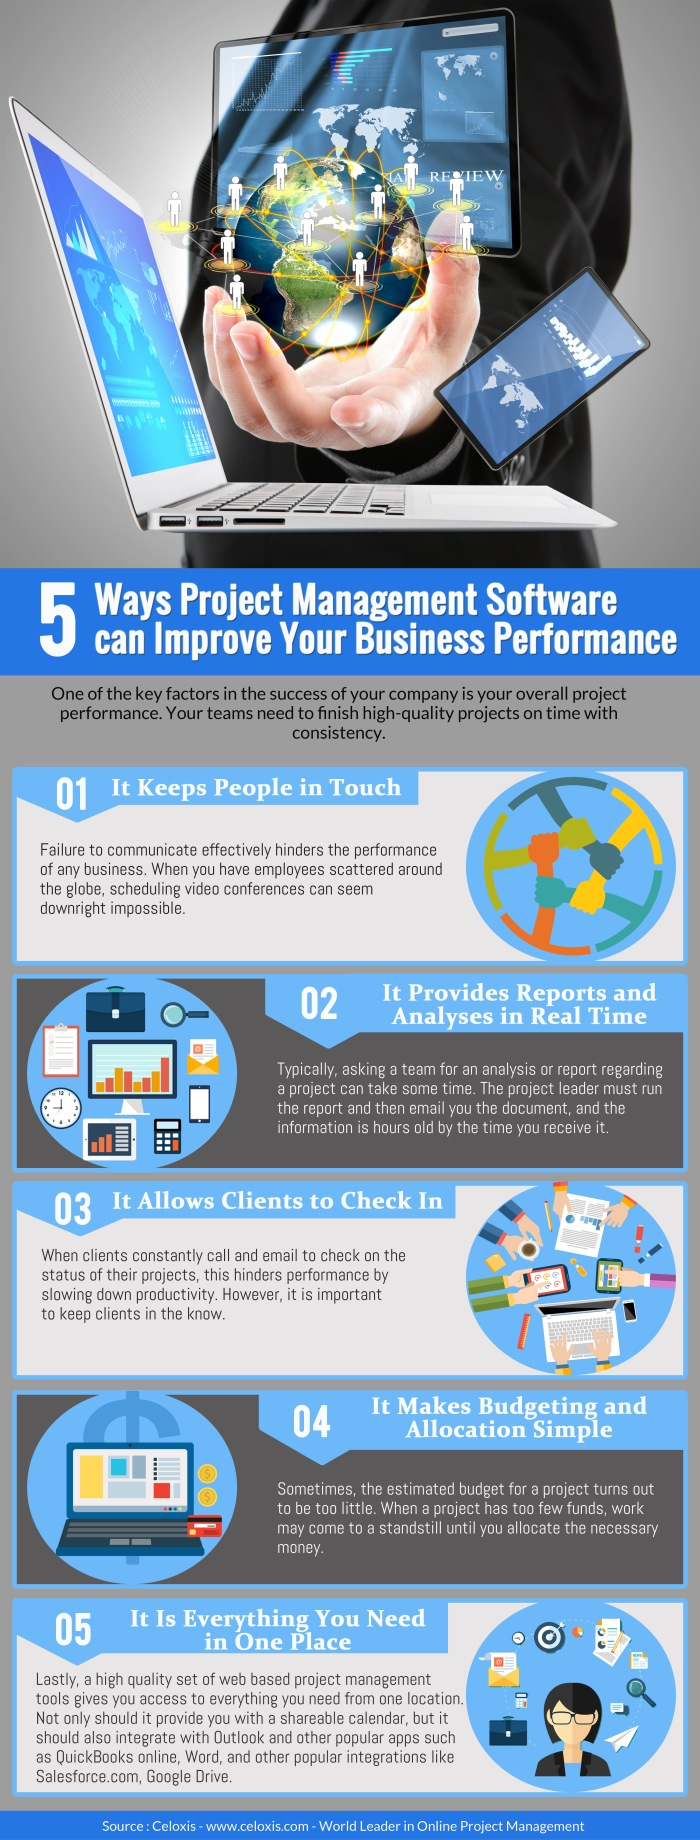 INFOGRAPHIC: 5 Ways Project Management Software can improve business performance